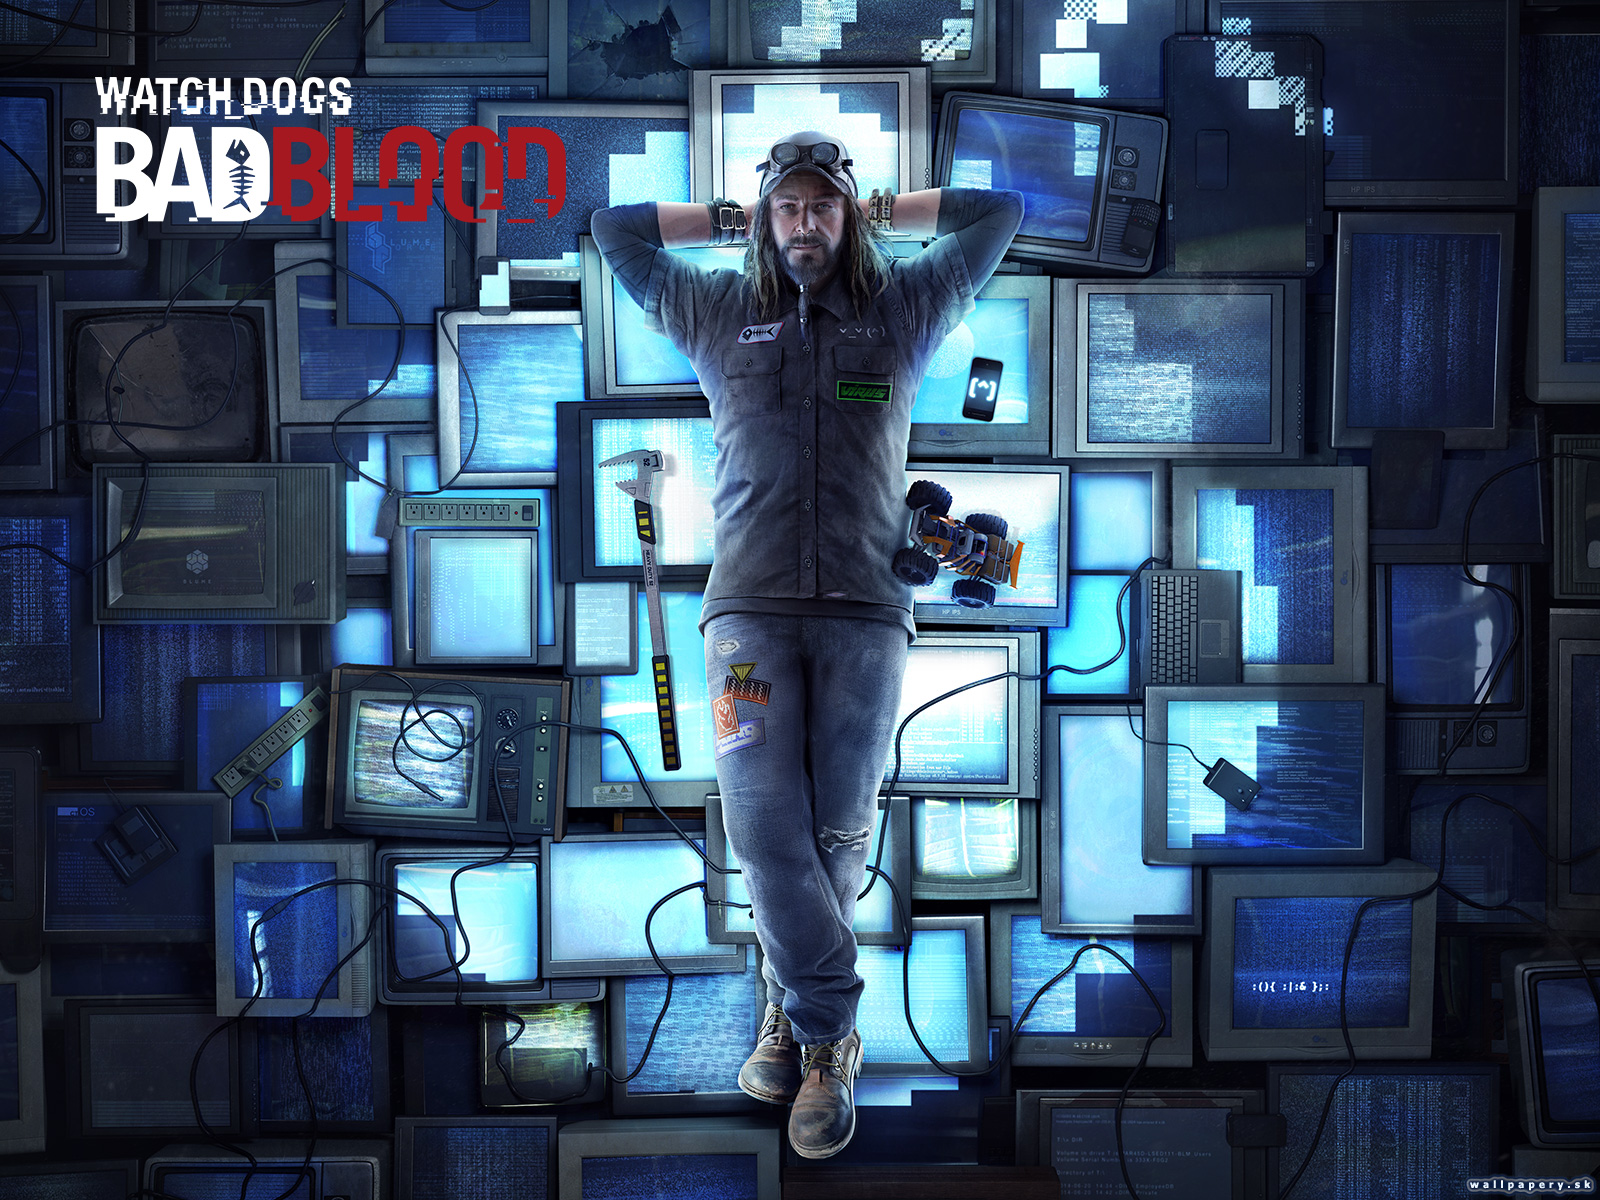 Watch Dogs: Bad Blood - wallpaper 1